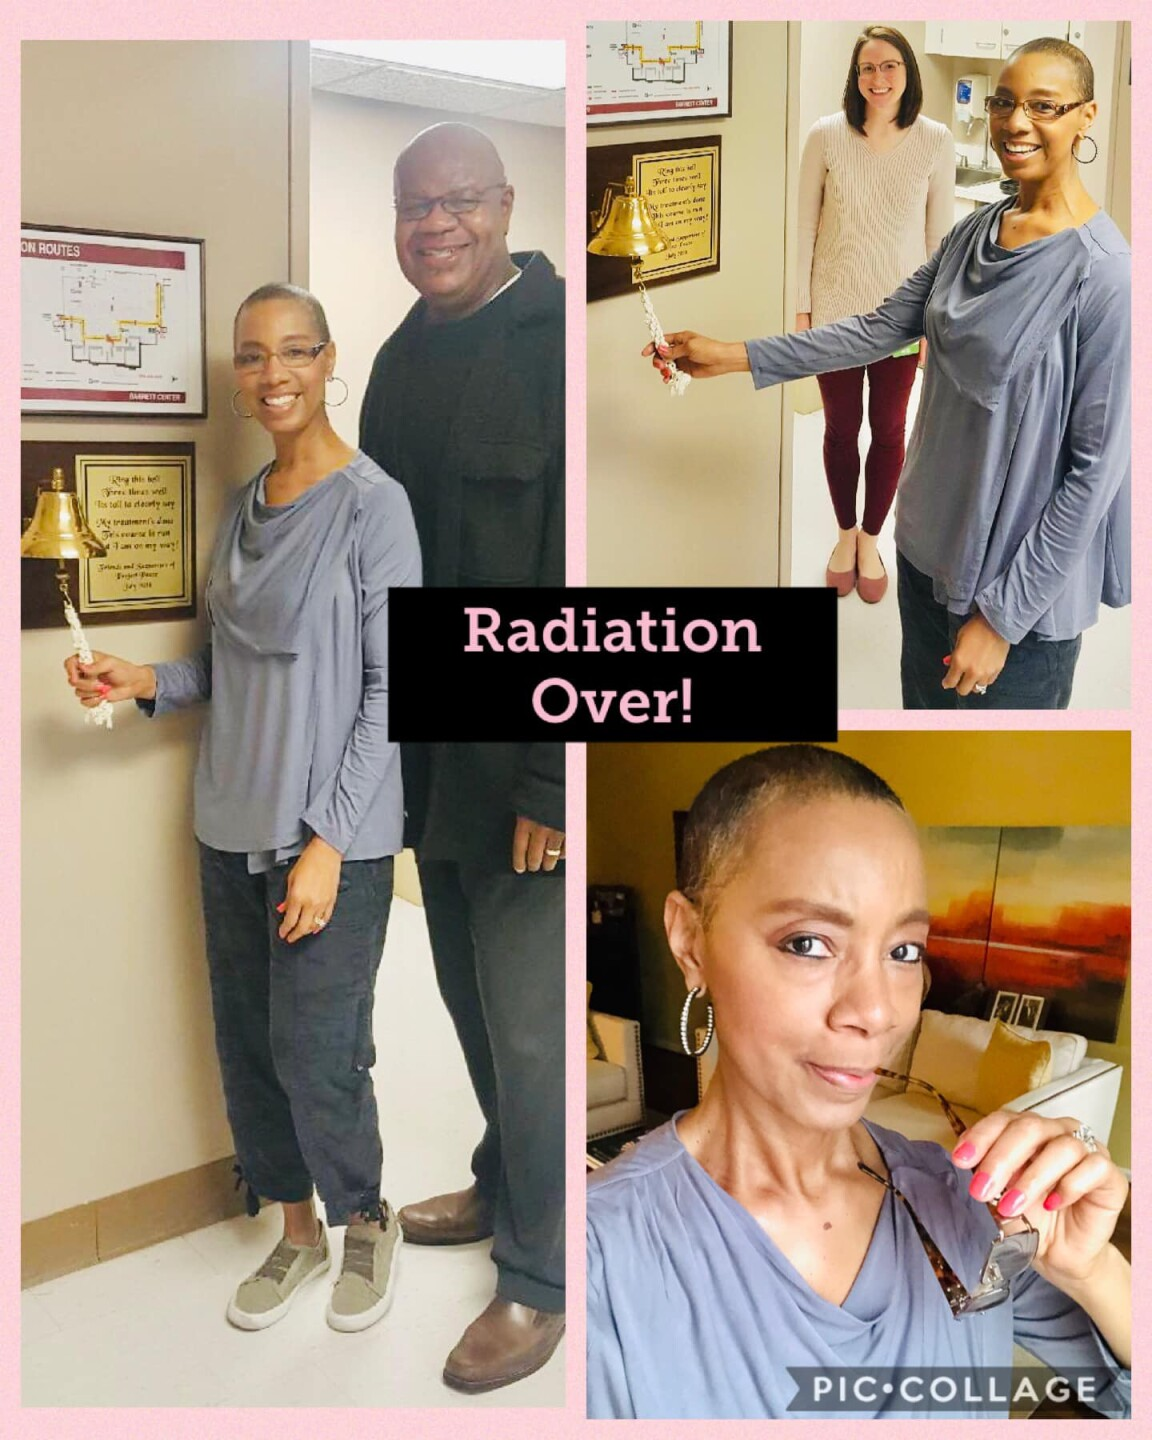 Sherry Hughes posted this Pic-Collage on Facebook on March 31, 2020, to celebrate the end of her radiation treatments. Her husband, Myron Hughes, is standing next to her in one of the photos.